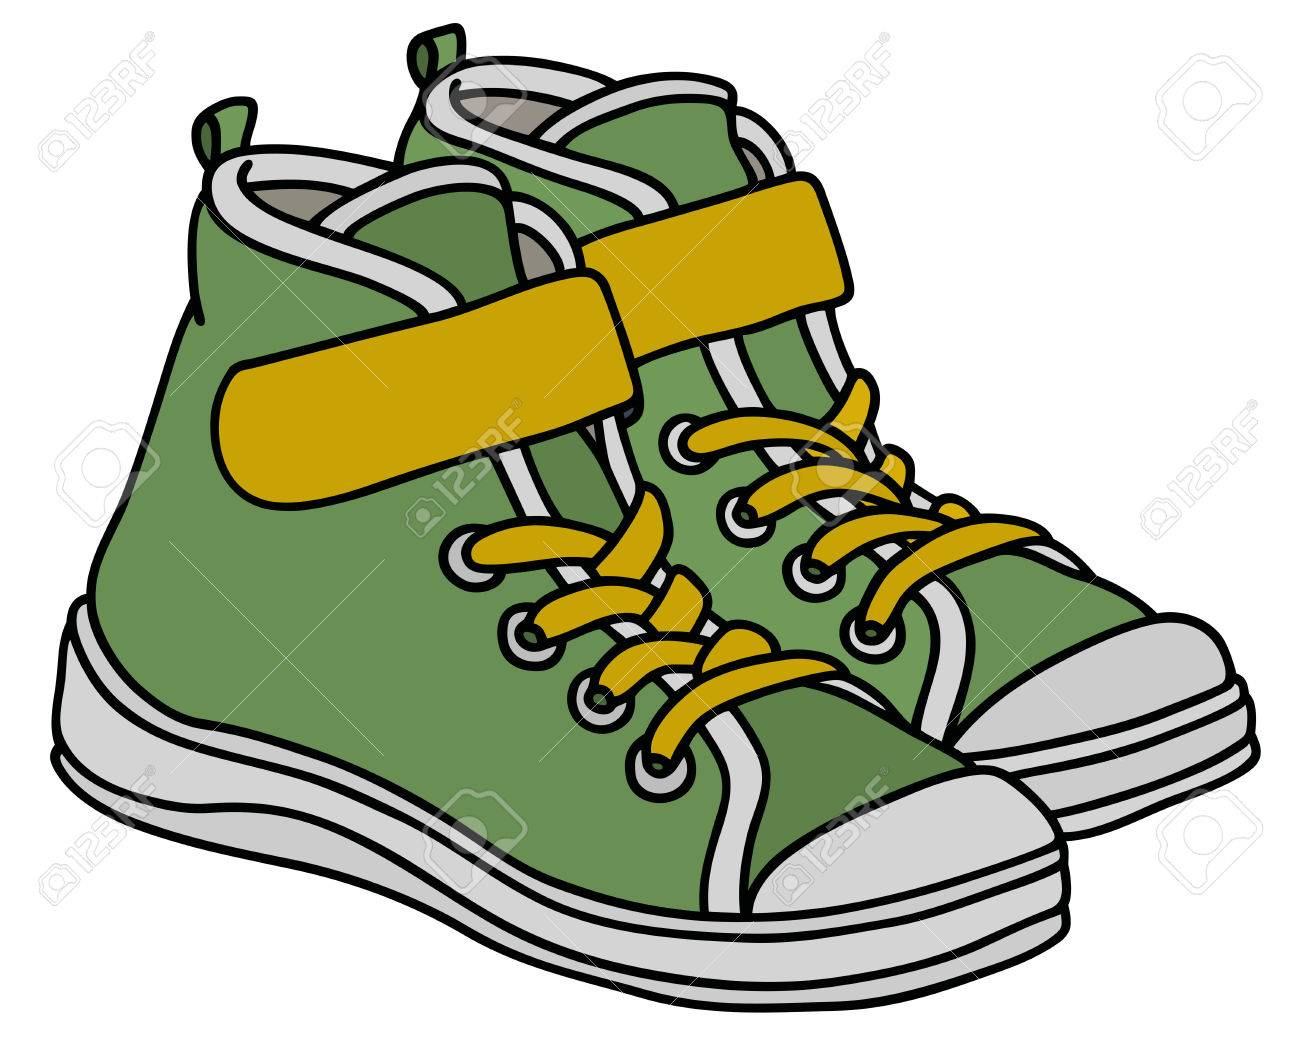 Green and yellow childrens sport shoes - 82742014